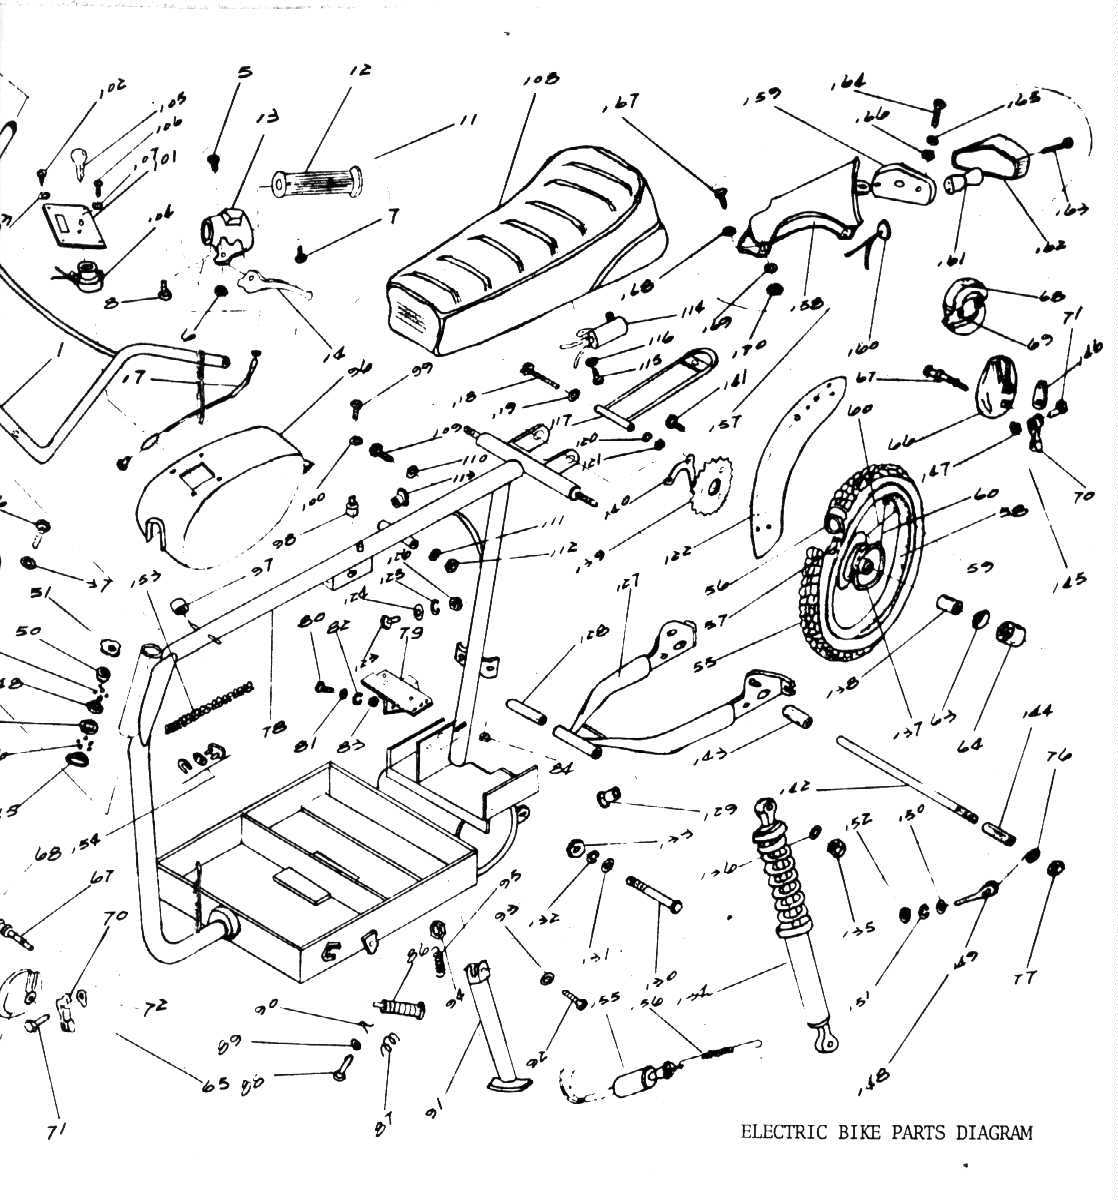 Beautiful Electrical Parts Diagram Composition - Diagram Wiring ...